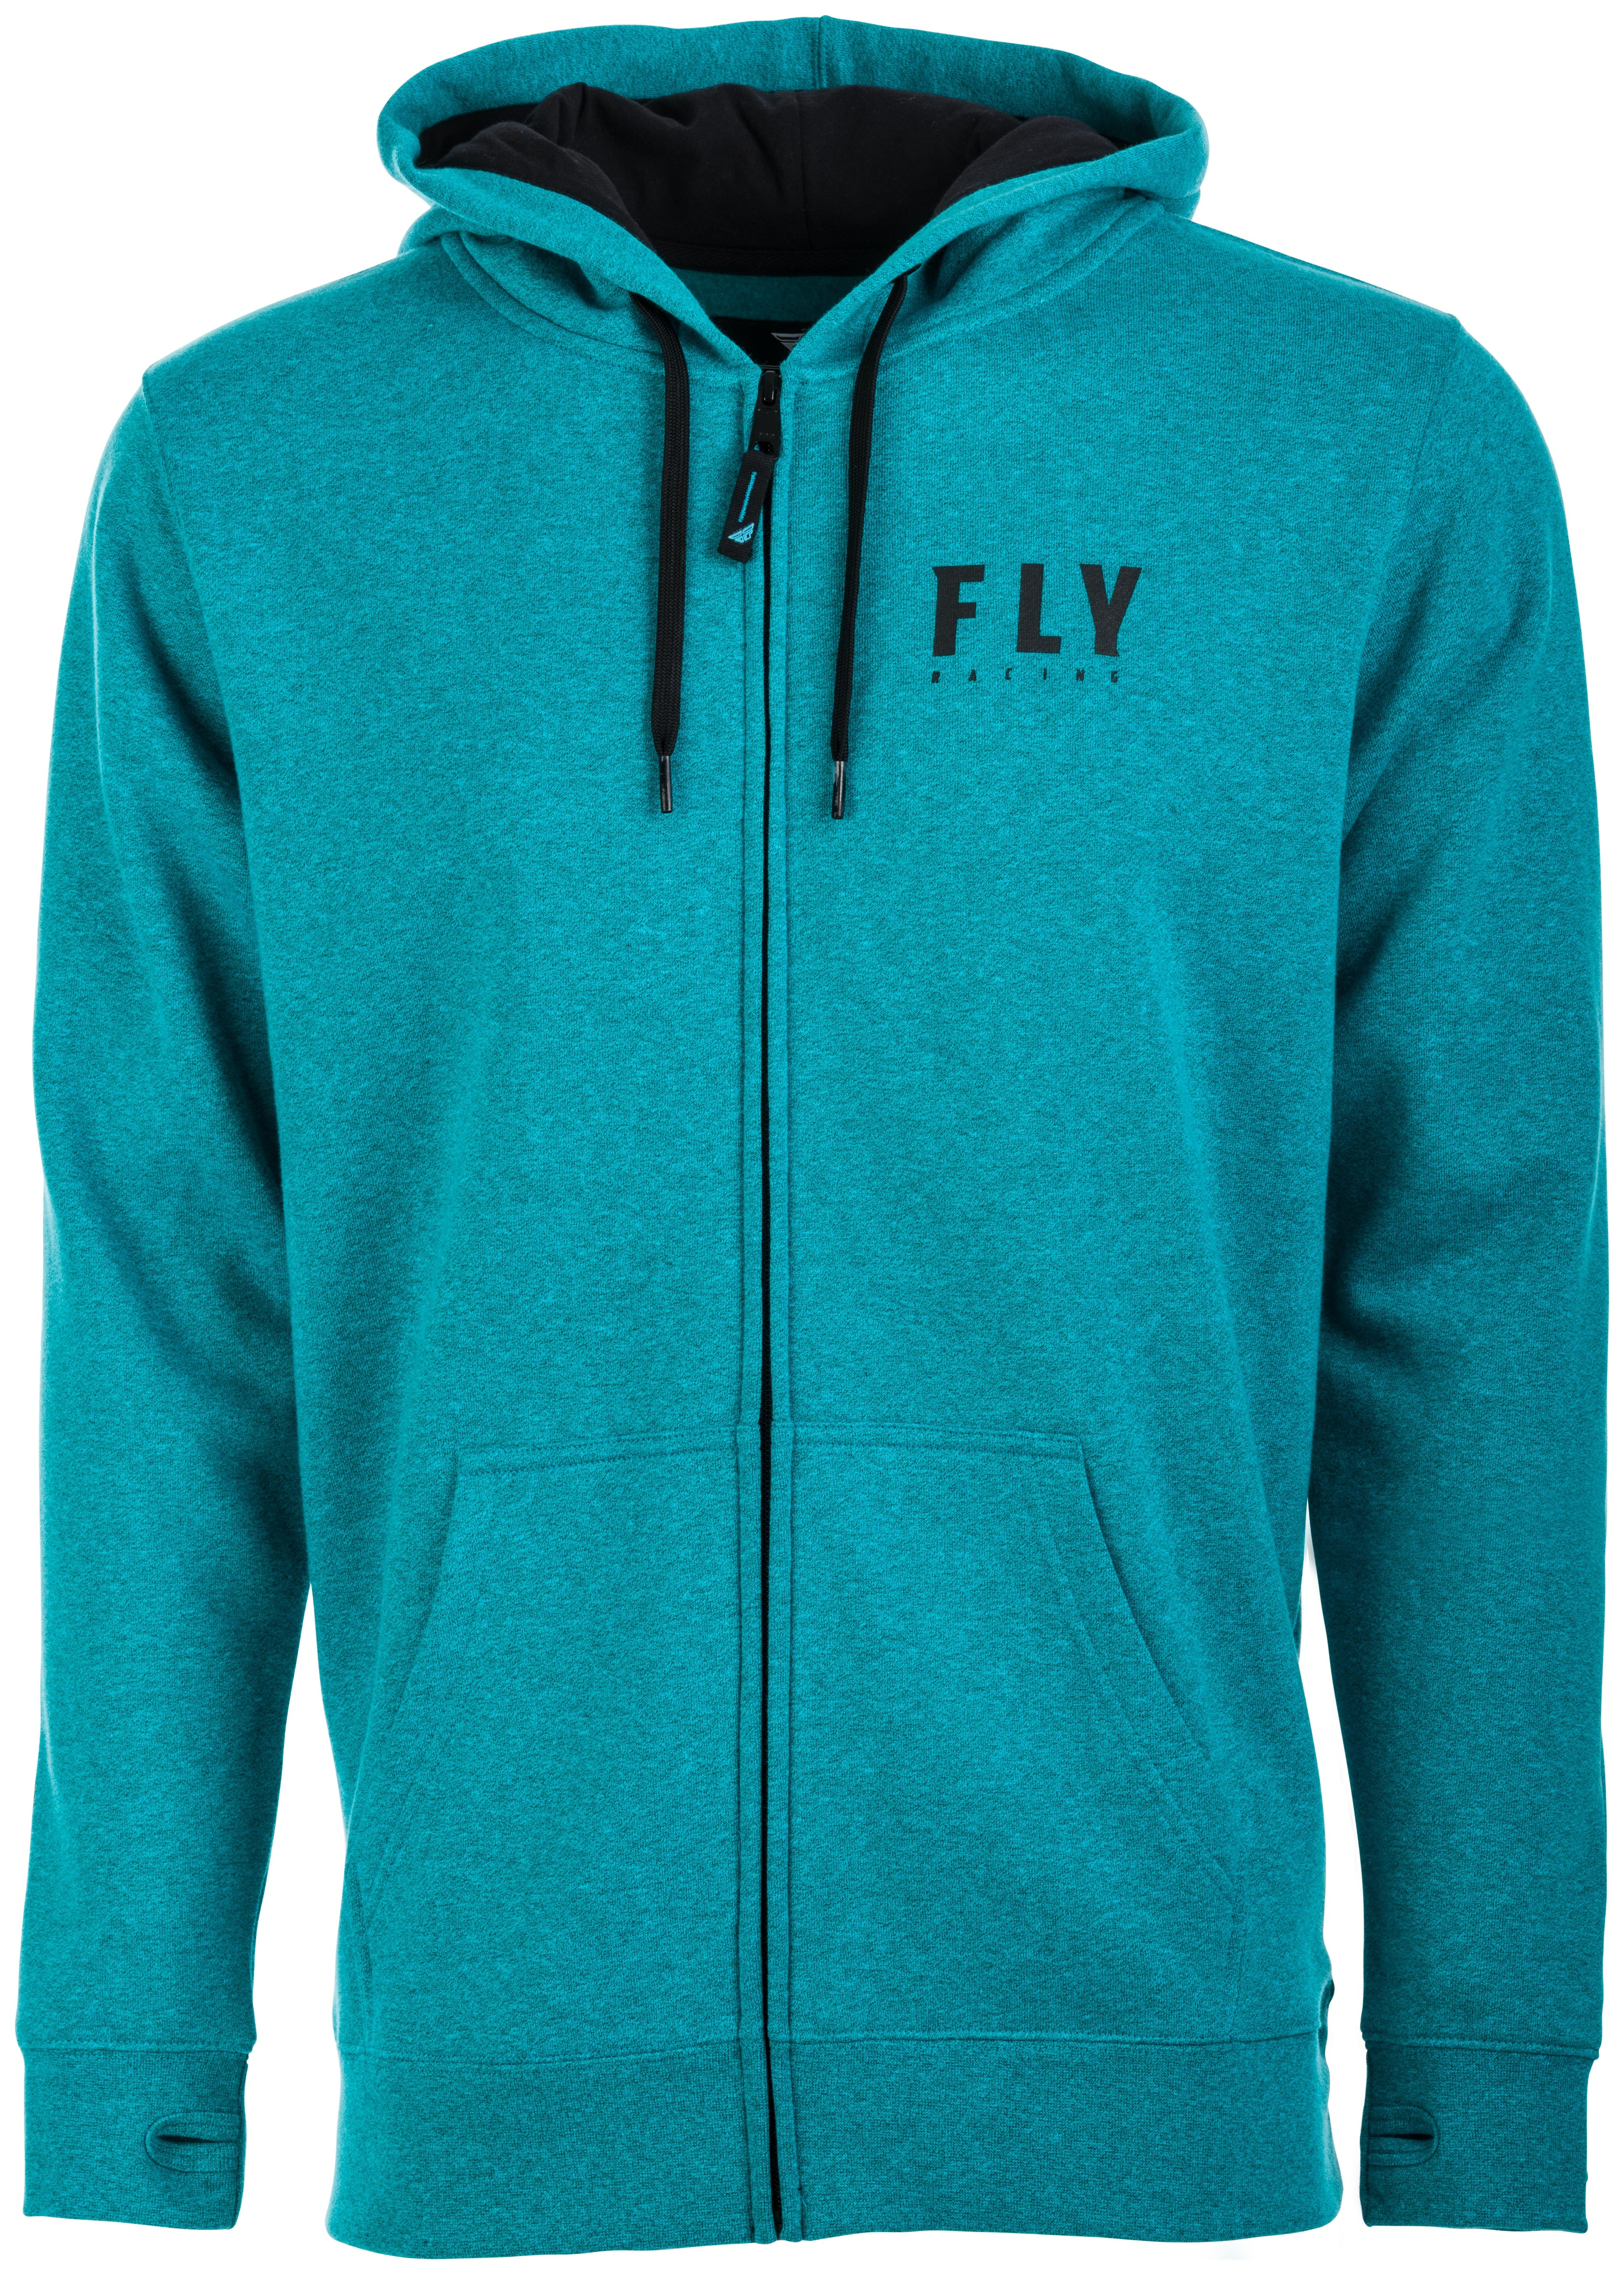 NEW FLY RACING CORP ZIP-UP HOODY DIRT BIKE OFF ROAD ALL SIZES